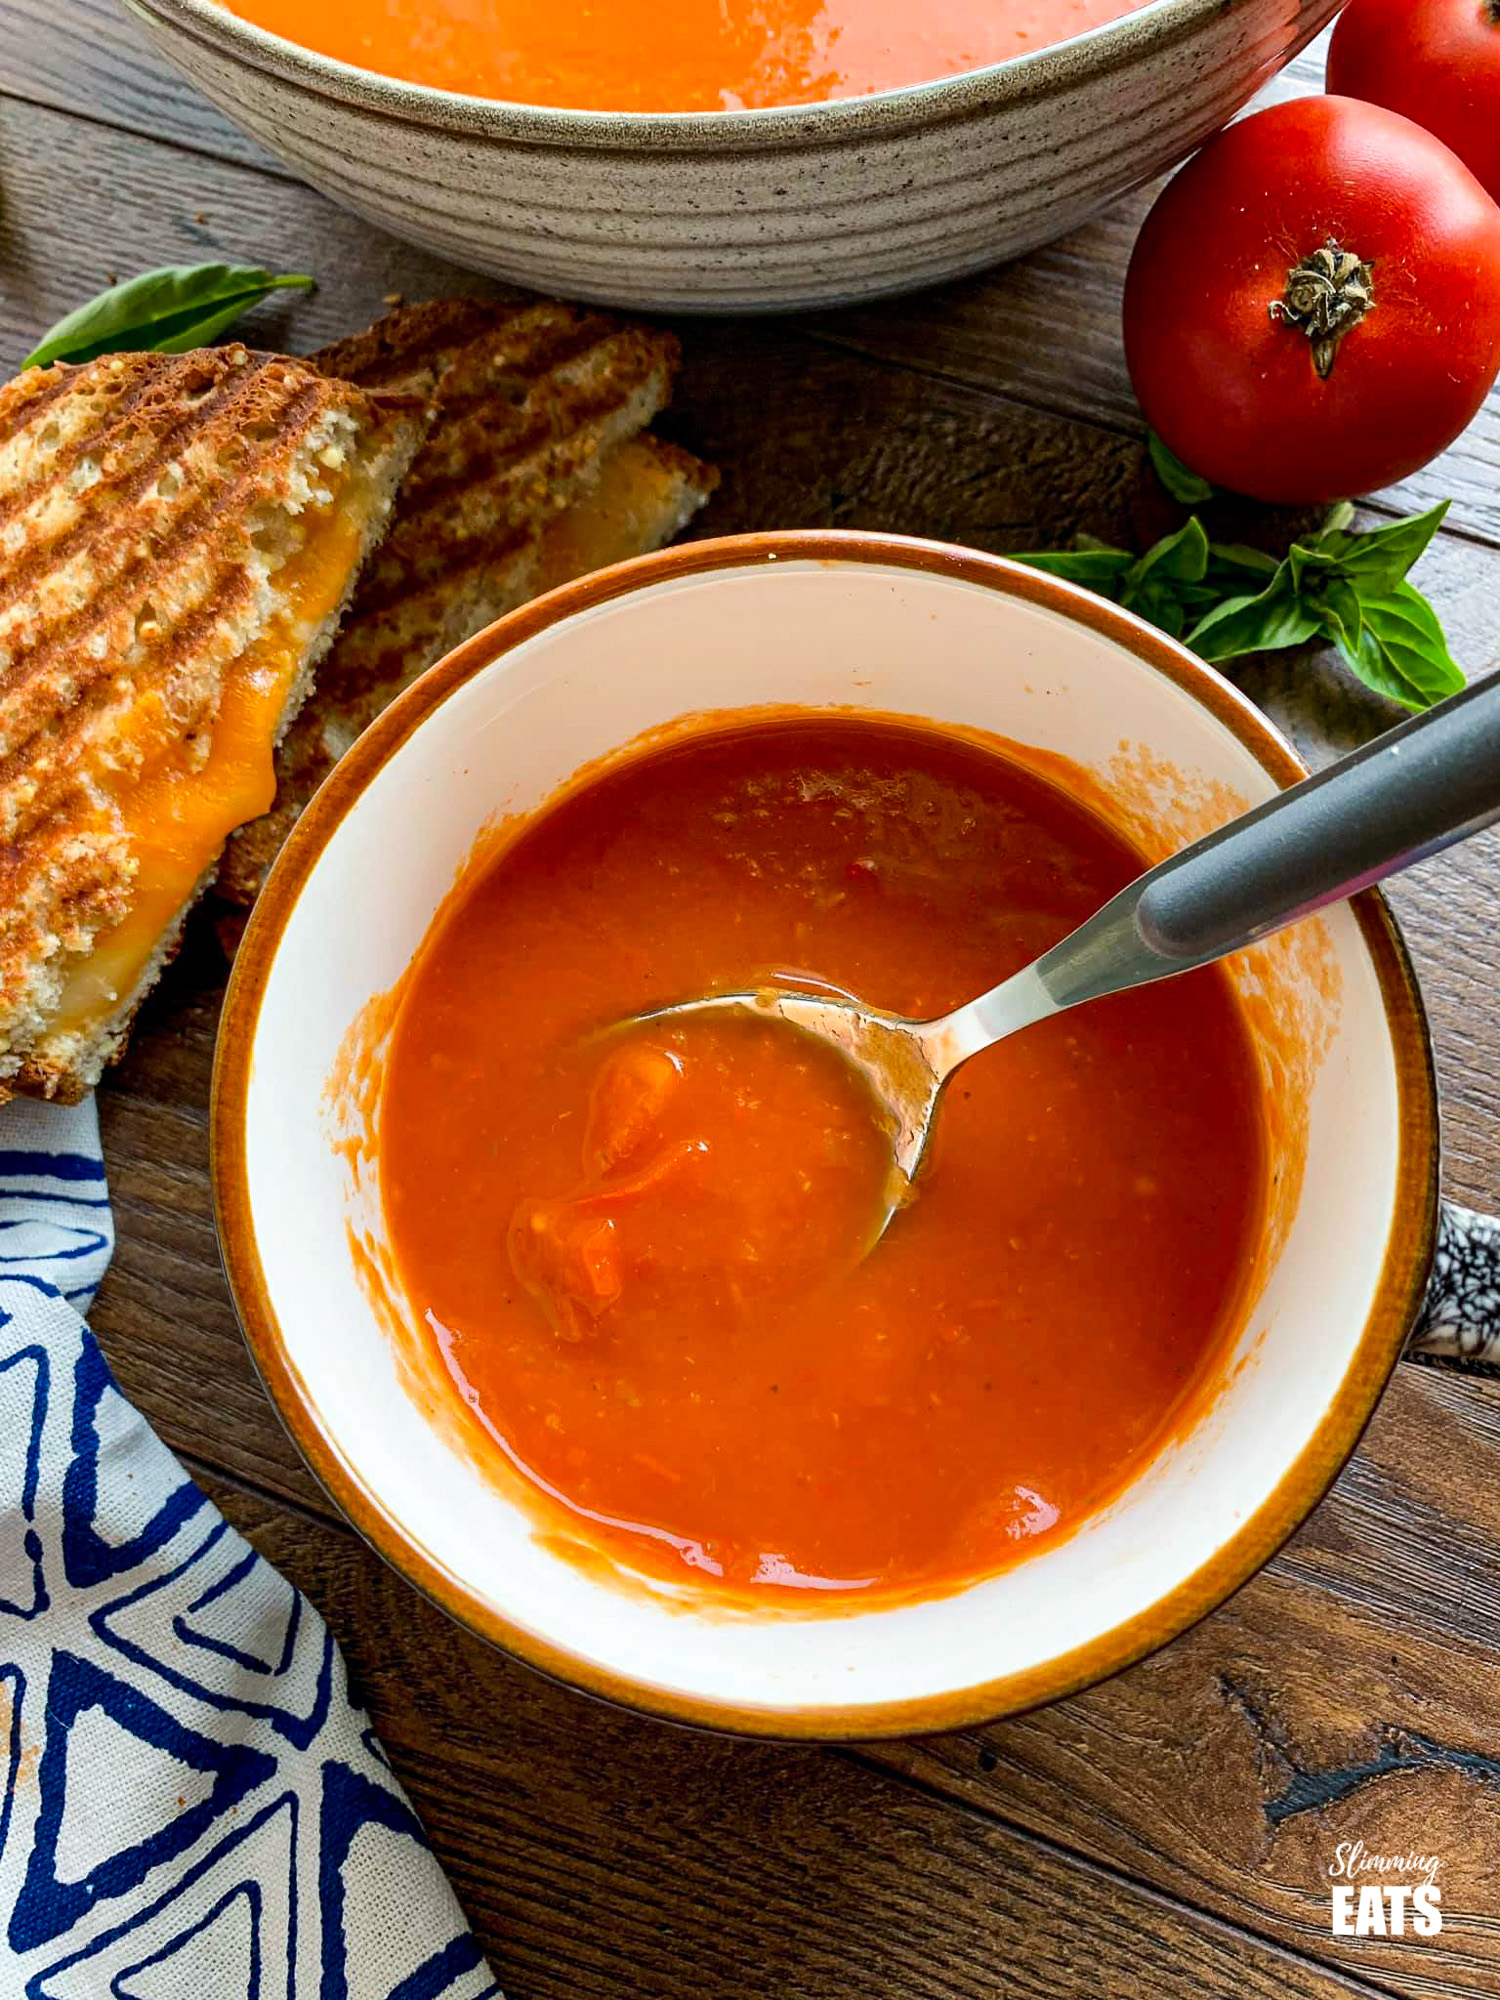 Roasted Red Pepper and Tomato Soup in cup with grilled cheese to the left and tomatoes on the right